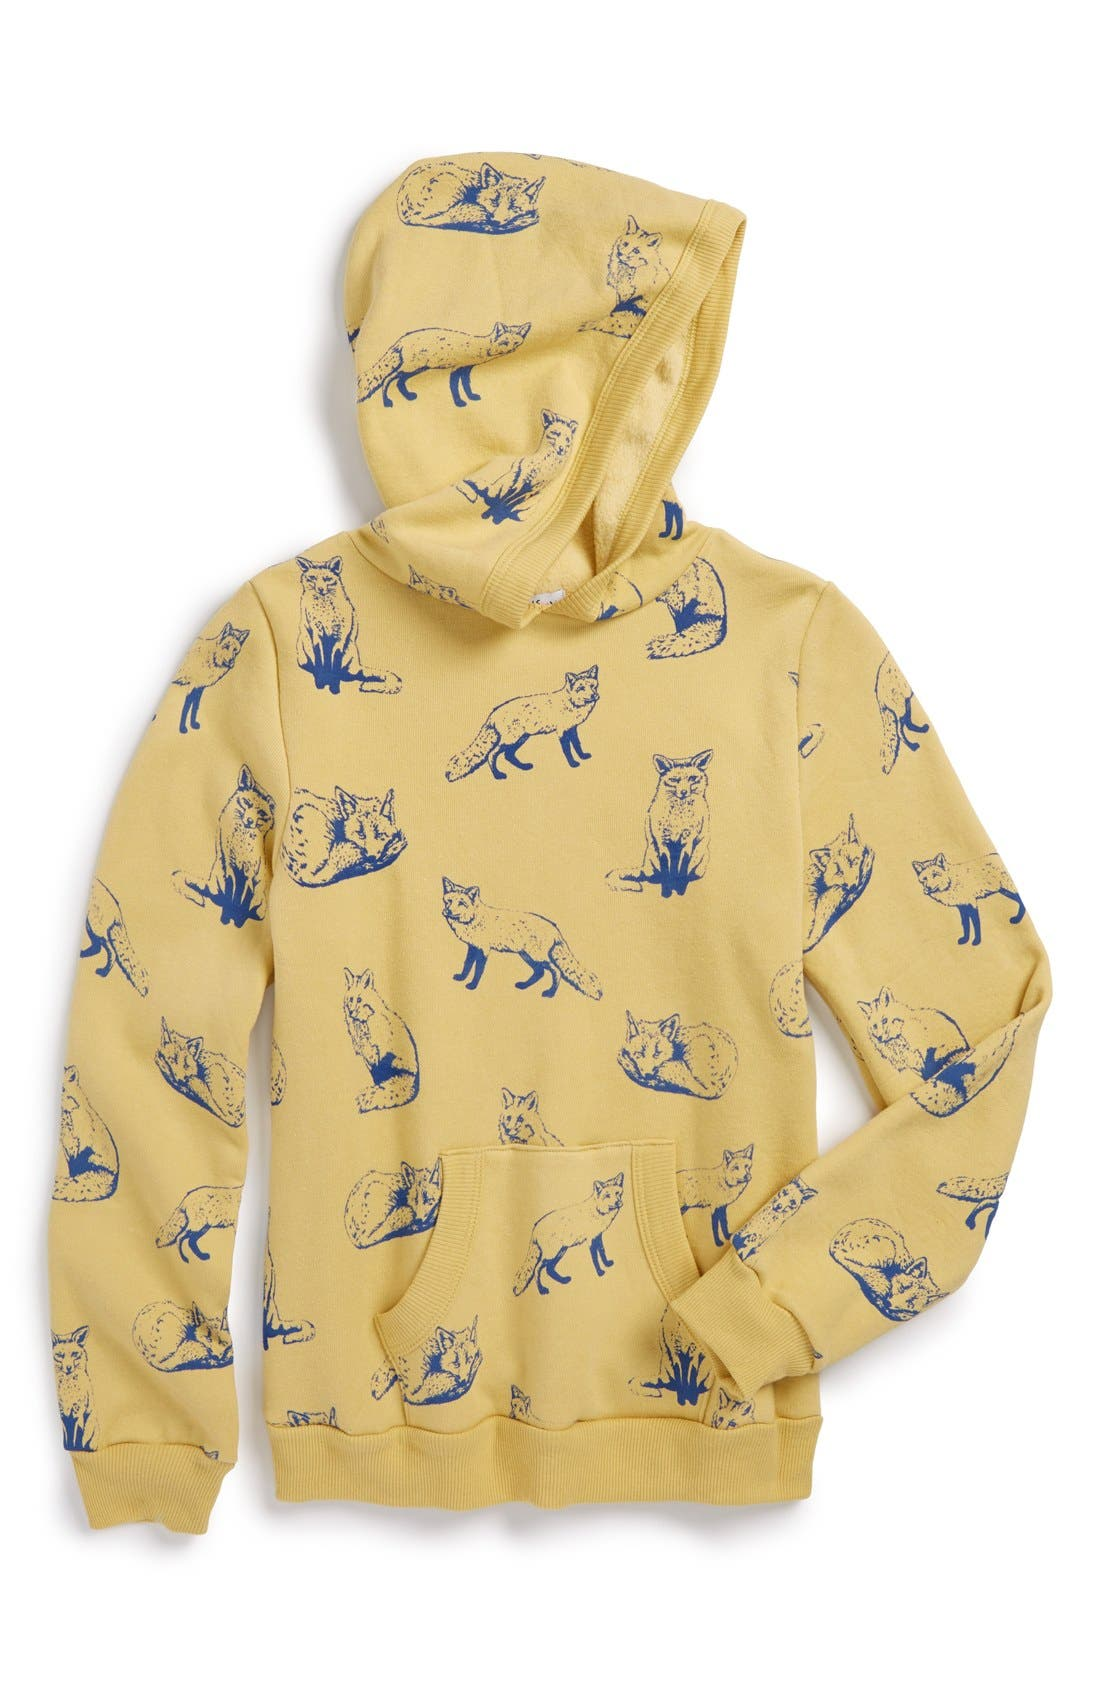 Main Image - Wildfox 'Fox Toile' Graphic Hoodie (Big Girls)